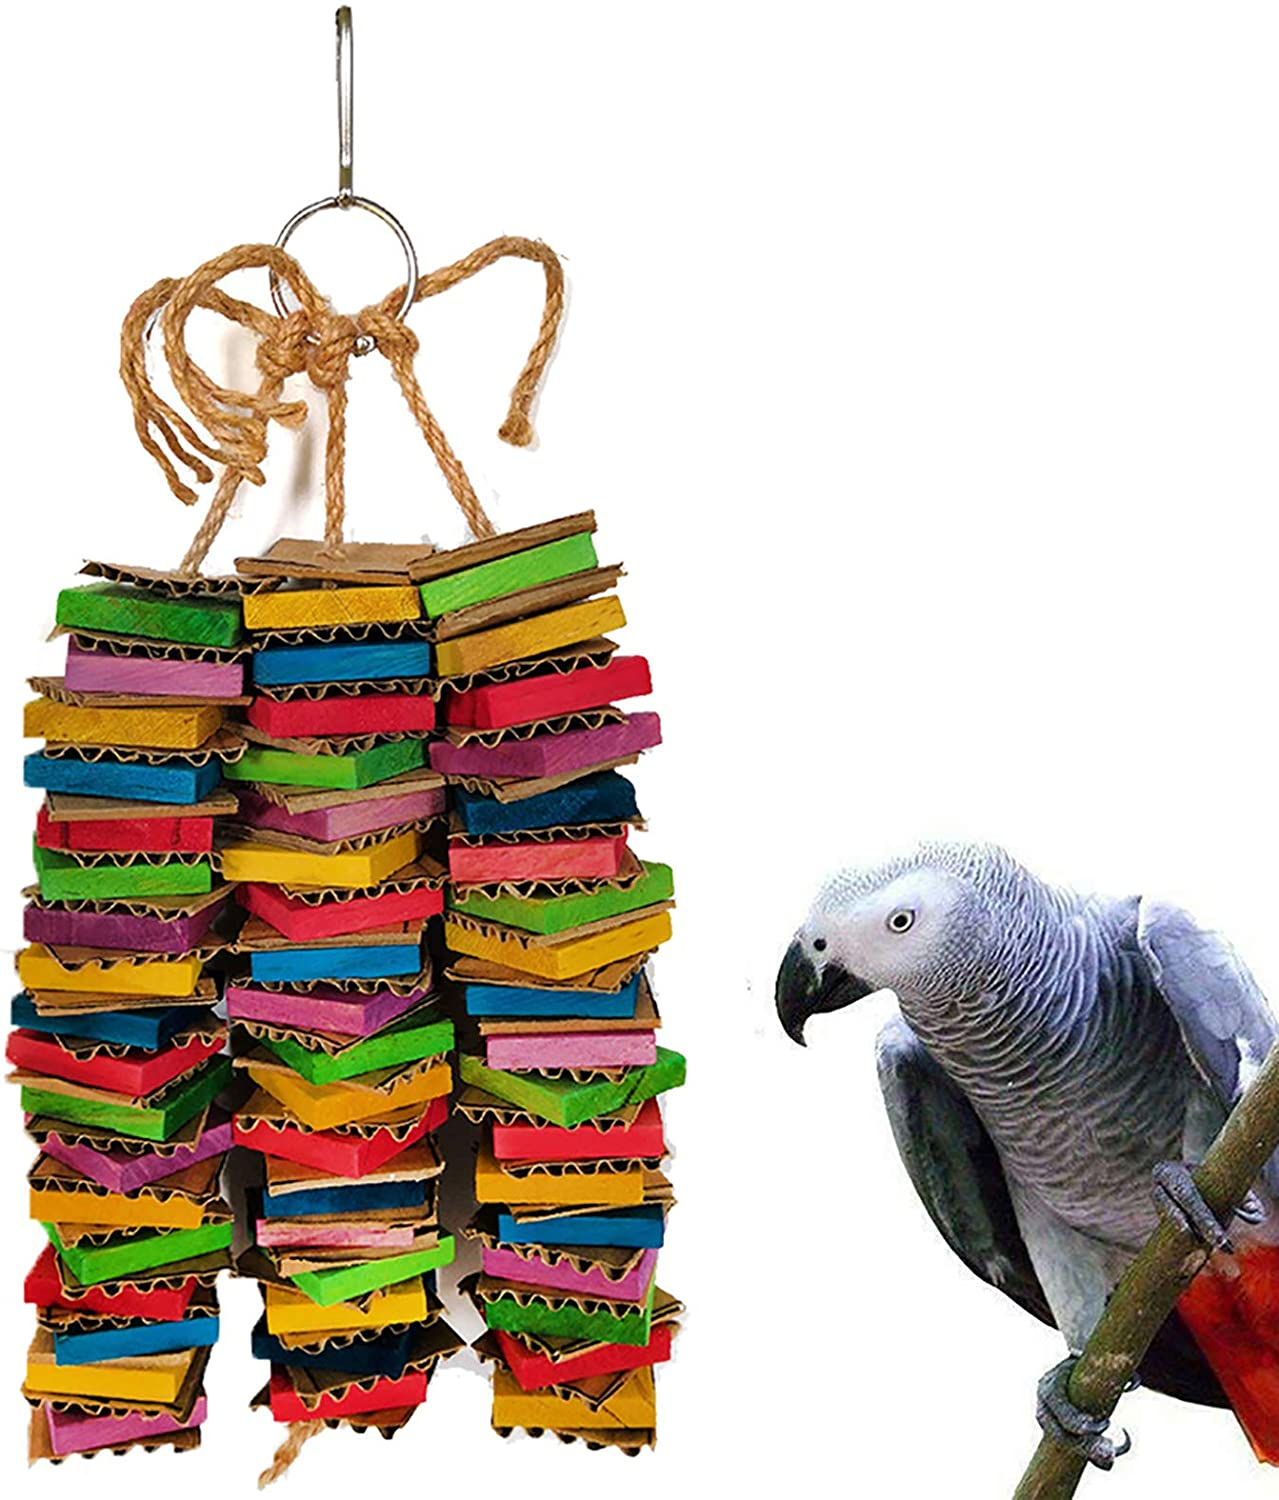 Foris DIY parrot Bird Toy Accessories Wooden Block Chewing cockatiel Toys african grey for Parrots Colourful Plastic Hooks Chain Hanging Climbing bird cage budgie Swing Toy for budgies